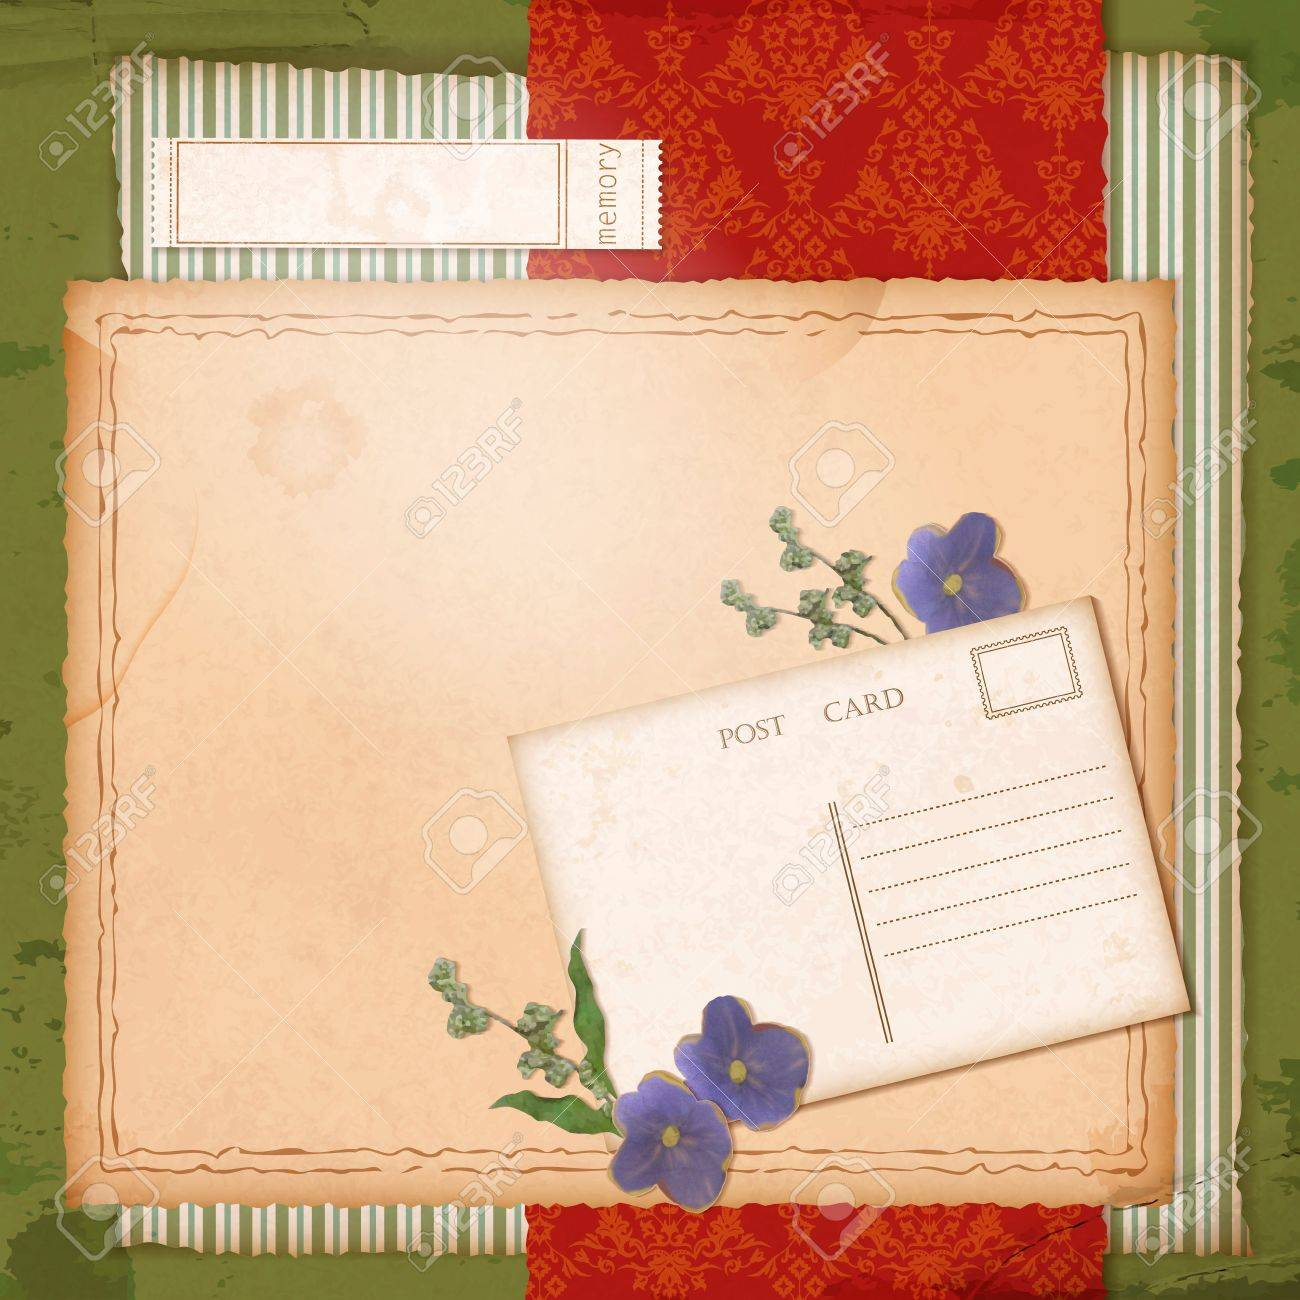 Scrapbook Retro Design